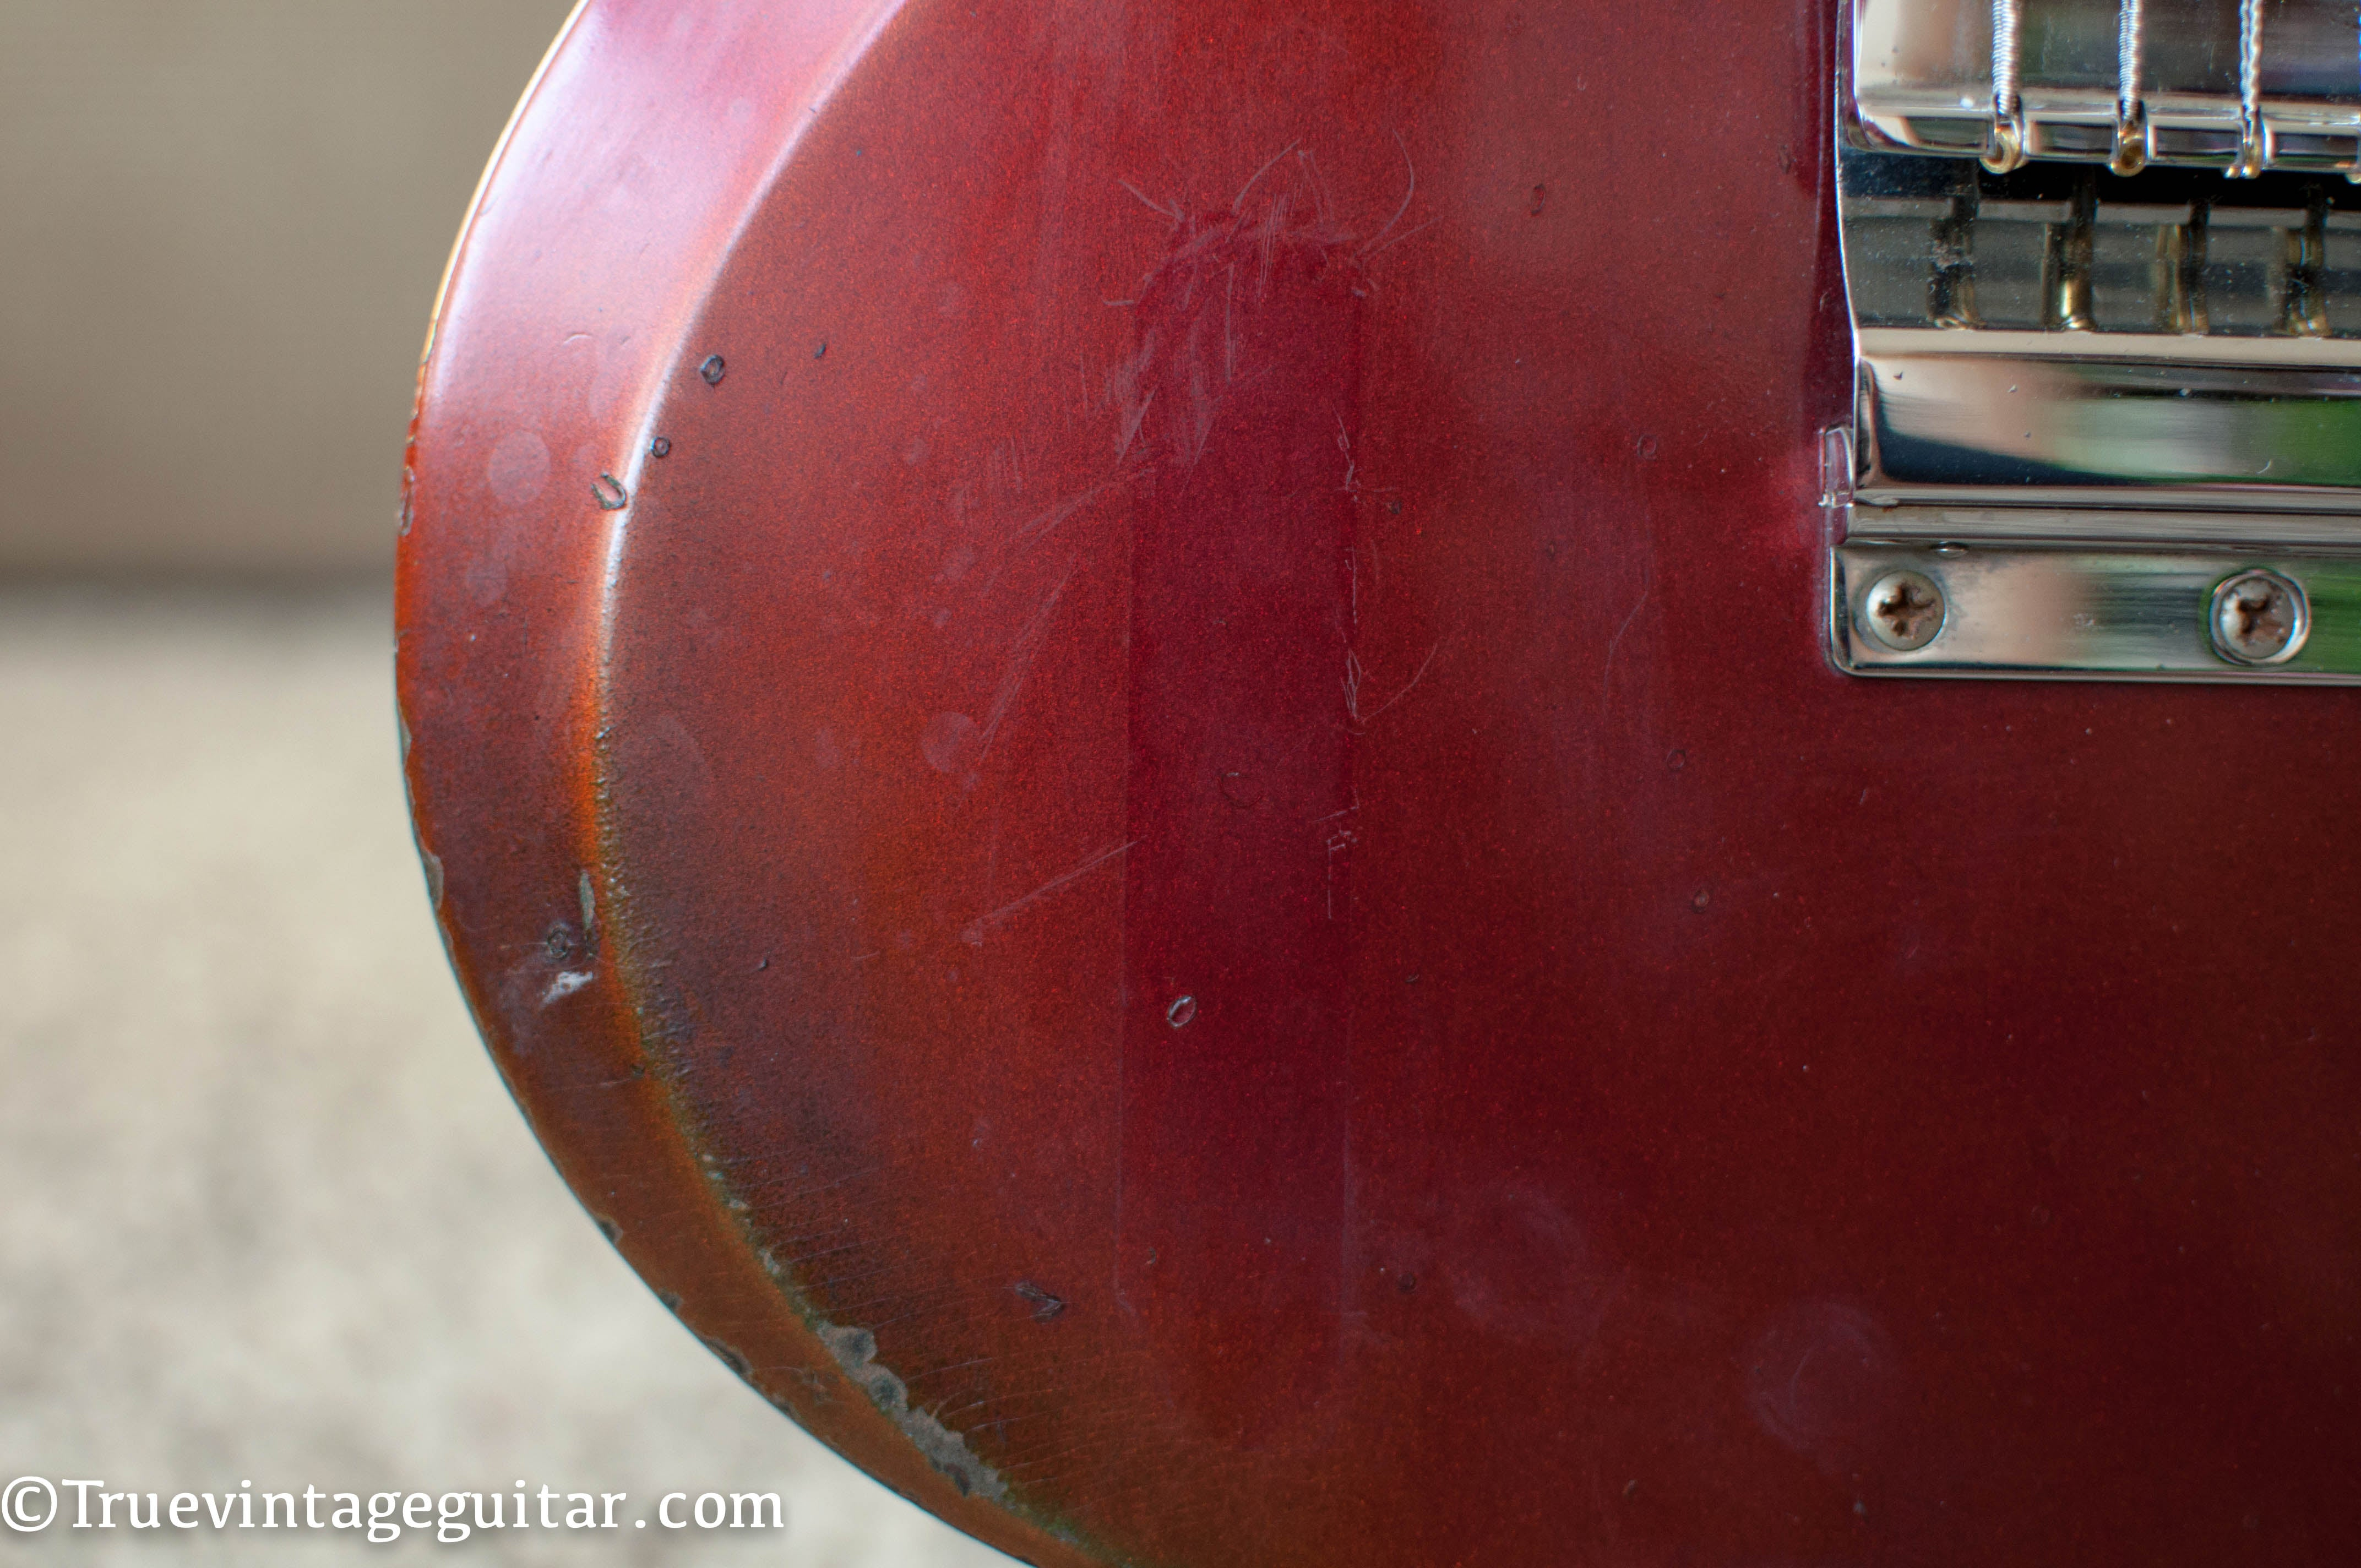 Sparkling Burgundy red metallic color 1960s Gibson electric guitar